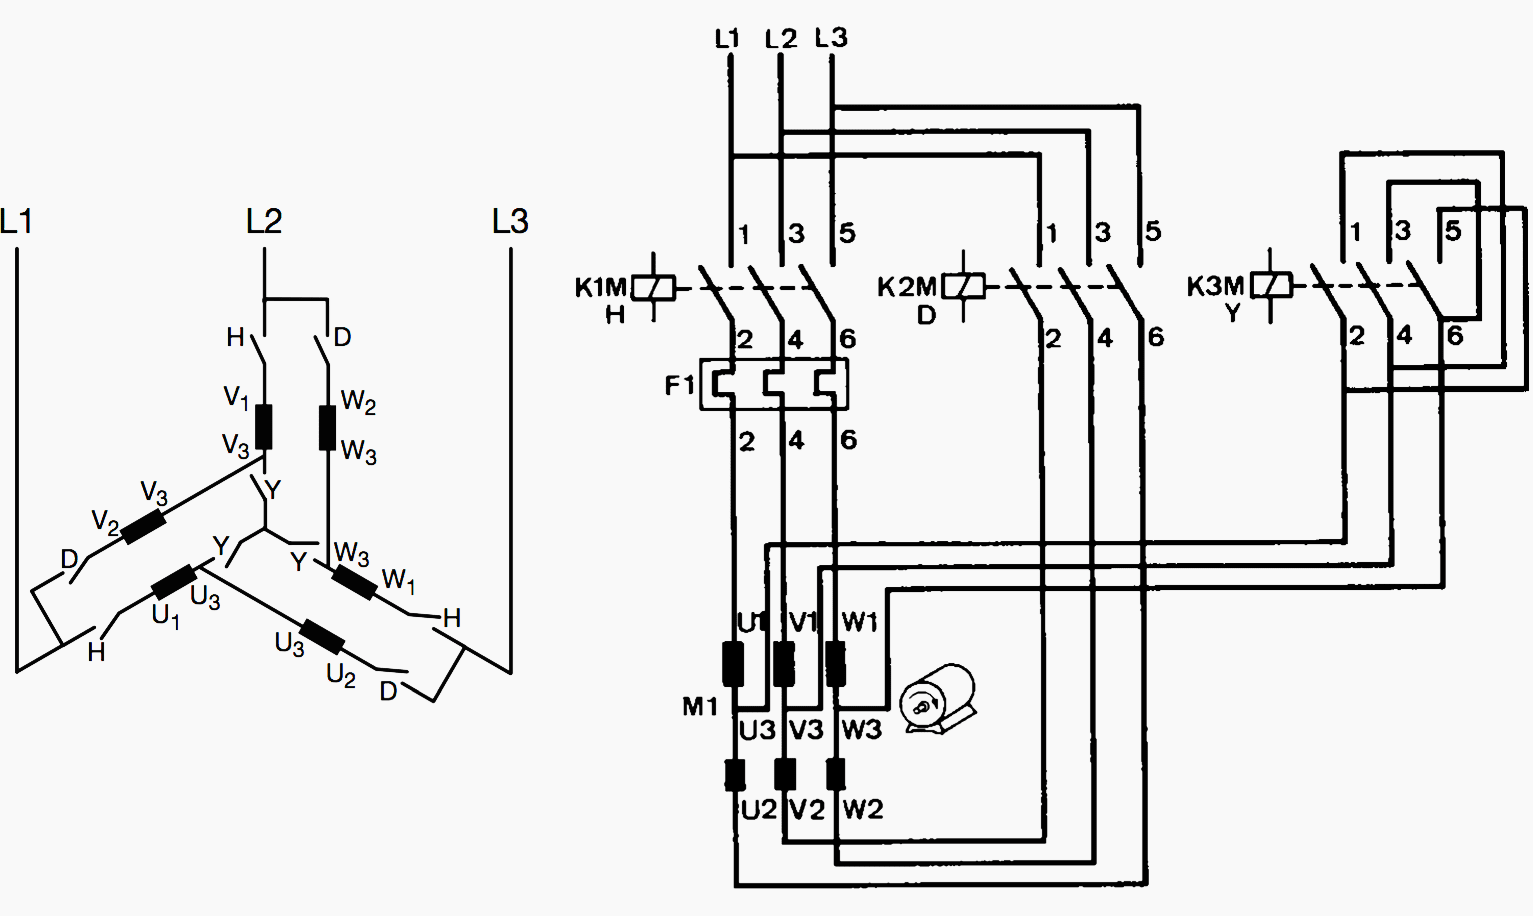 star delta control wiring diagram images logixpro traffic light ladder traditional motor starting method used in